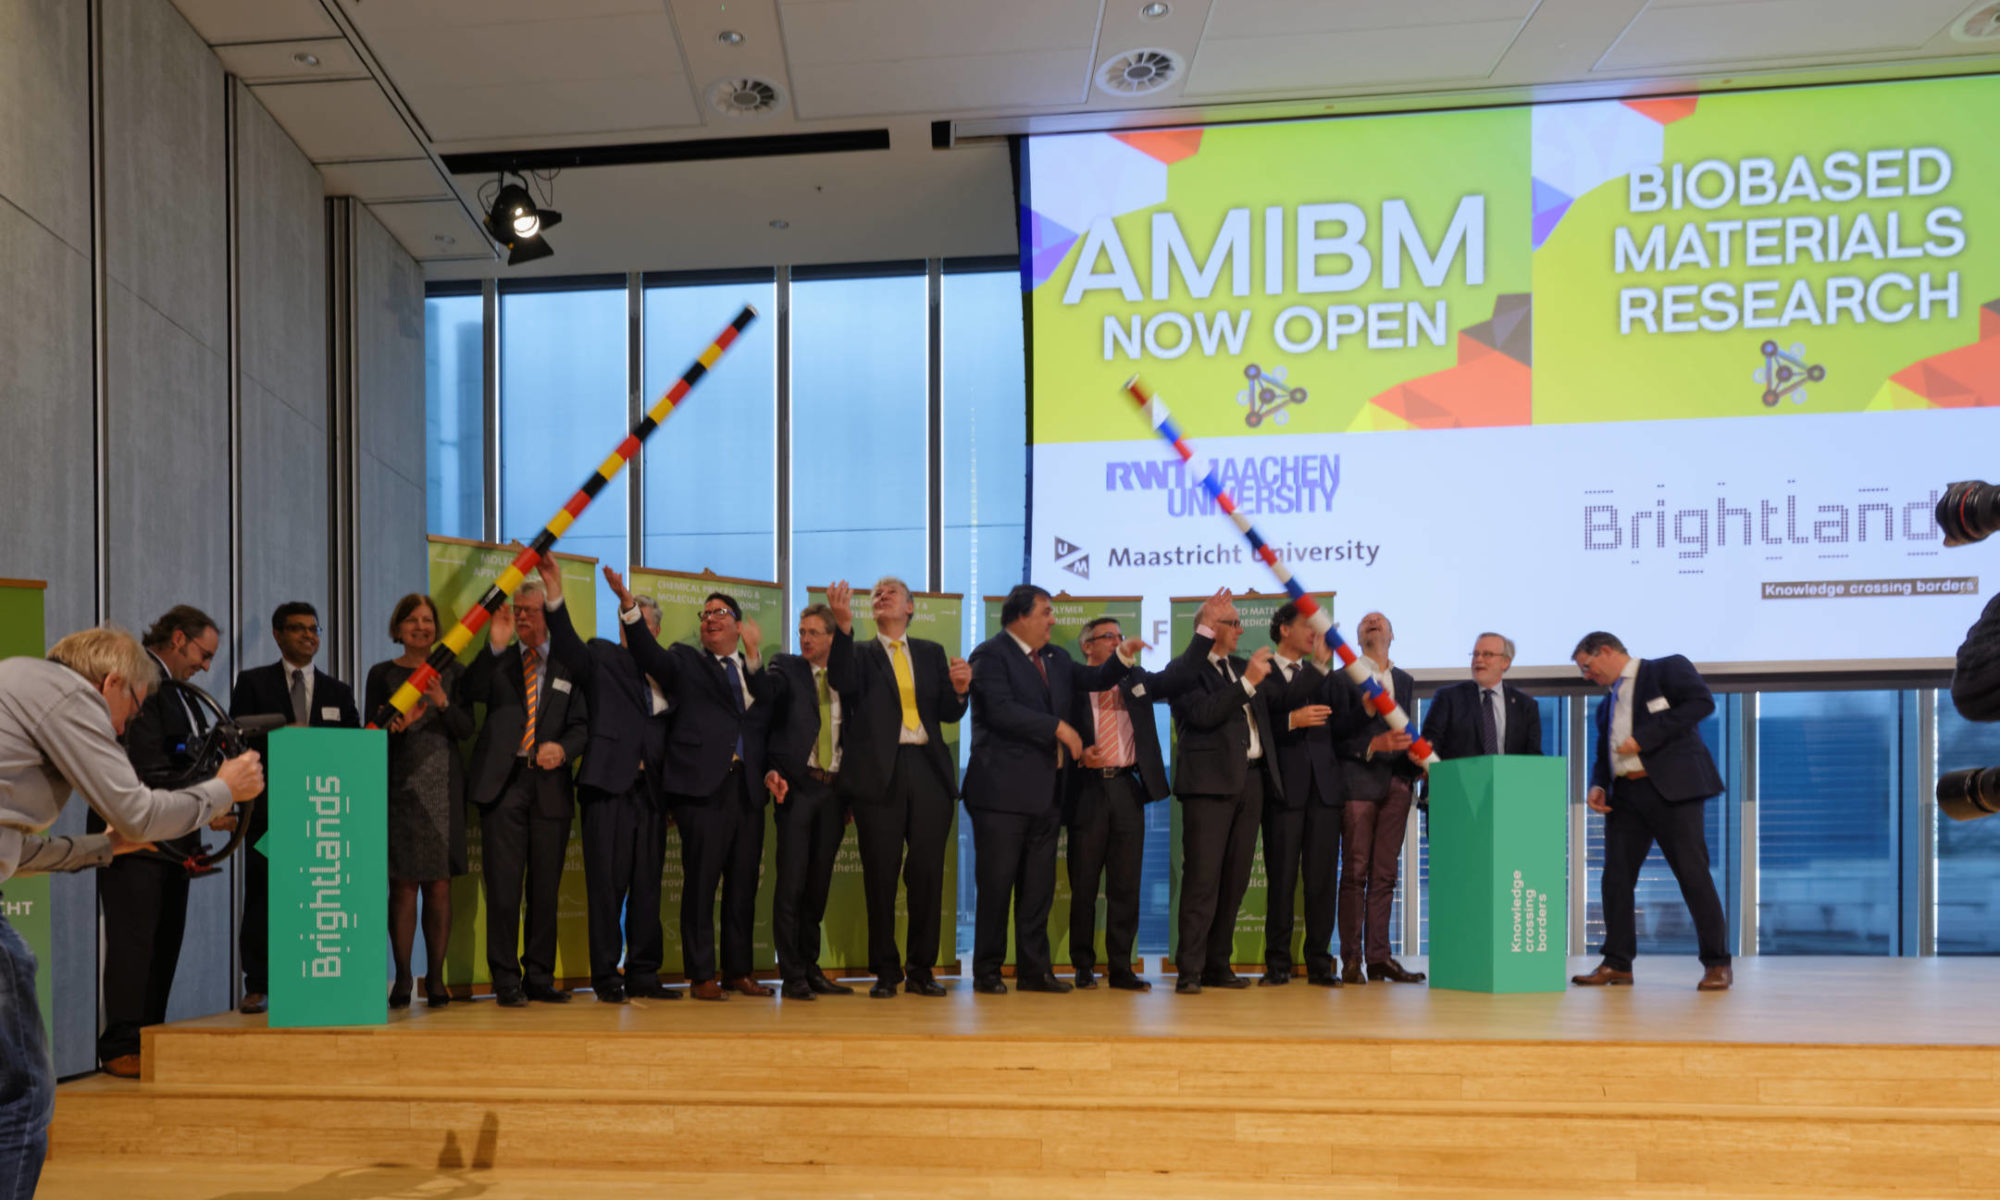 AMIBM labs officially opened - Agro & Chemistry